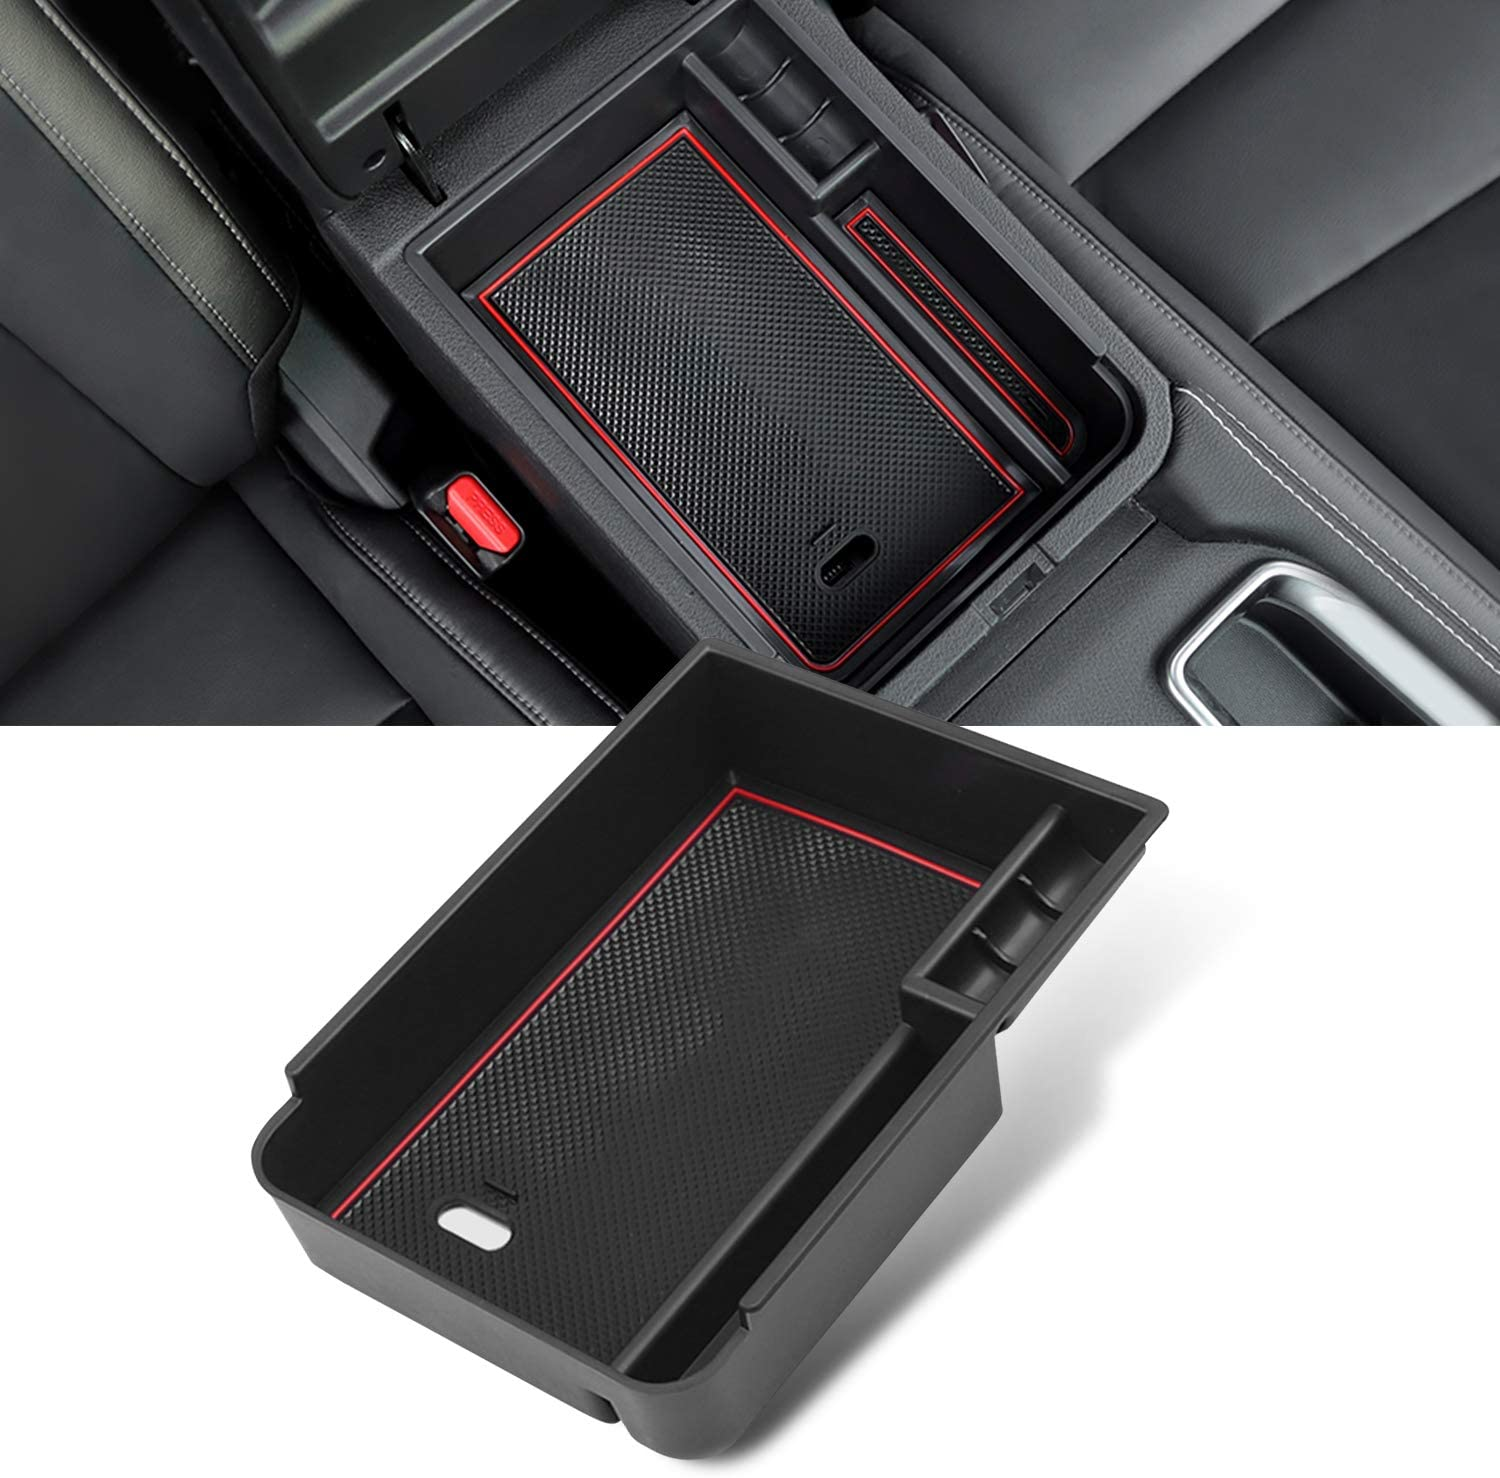 YEE PIN 2020 Sentra Center Console Organizer Tray Sentra Armrest Tray Armrest Box Secondary Storage Insert ABS Materials Tray Compatible with 2020 Sentra